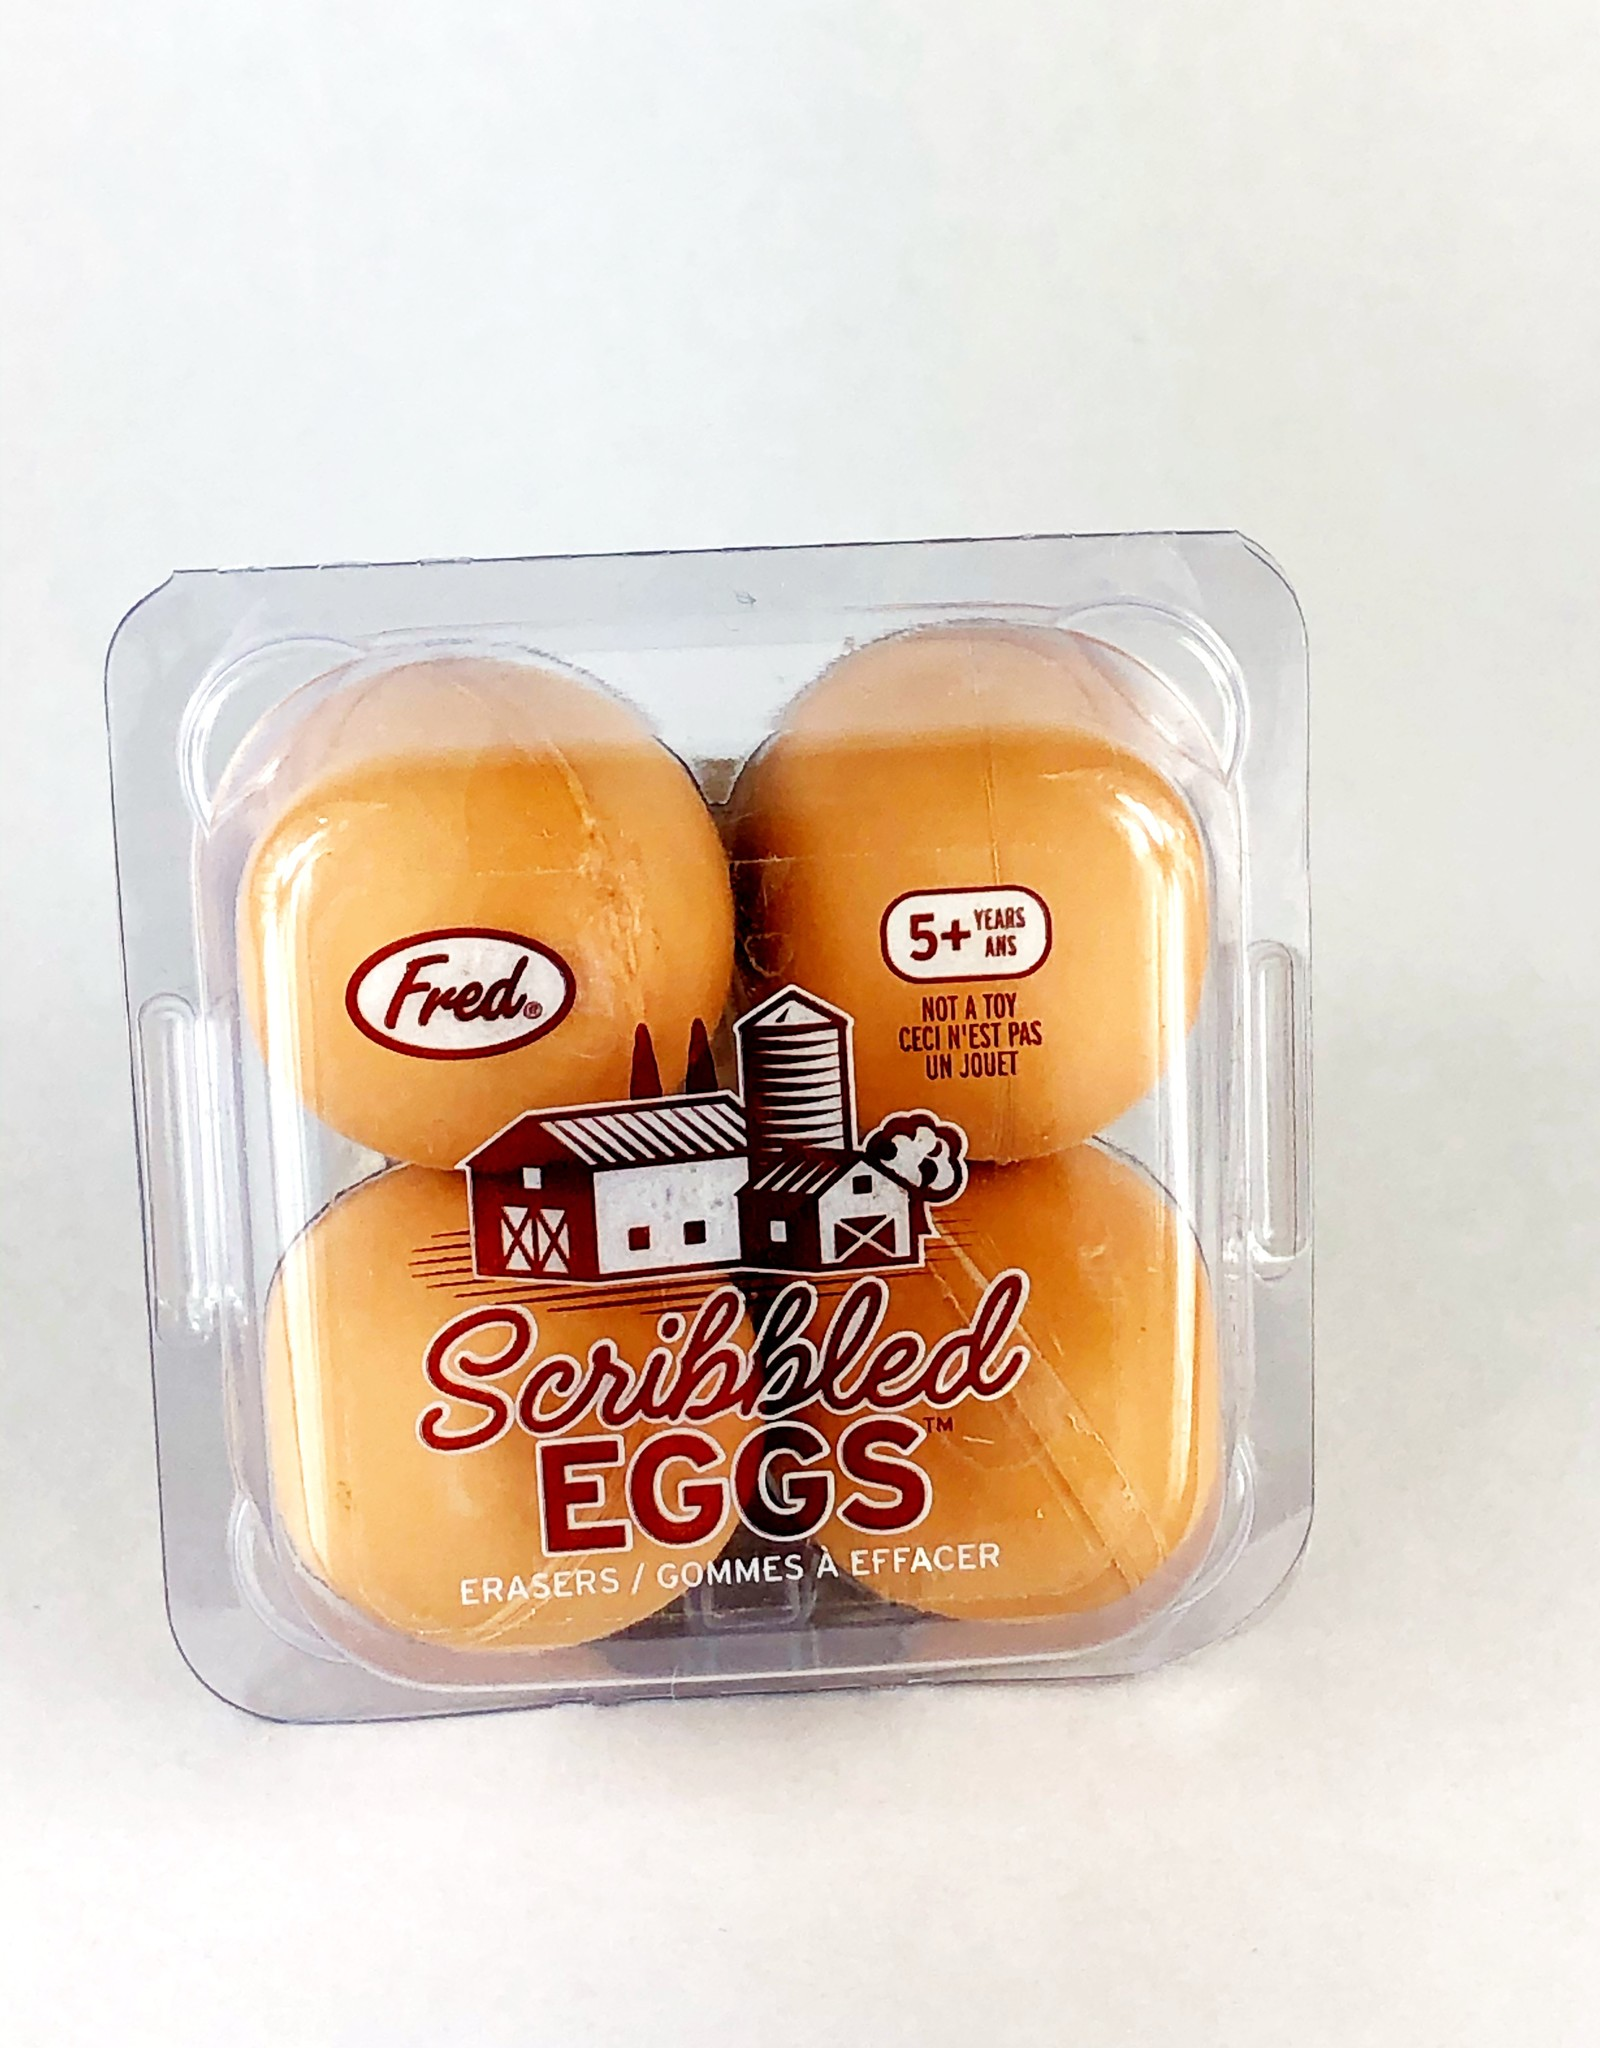 Fred & Friends SCRIBBLED EGGS - EGG ERASERS-4